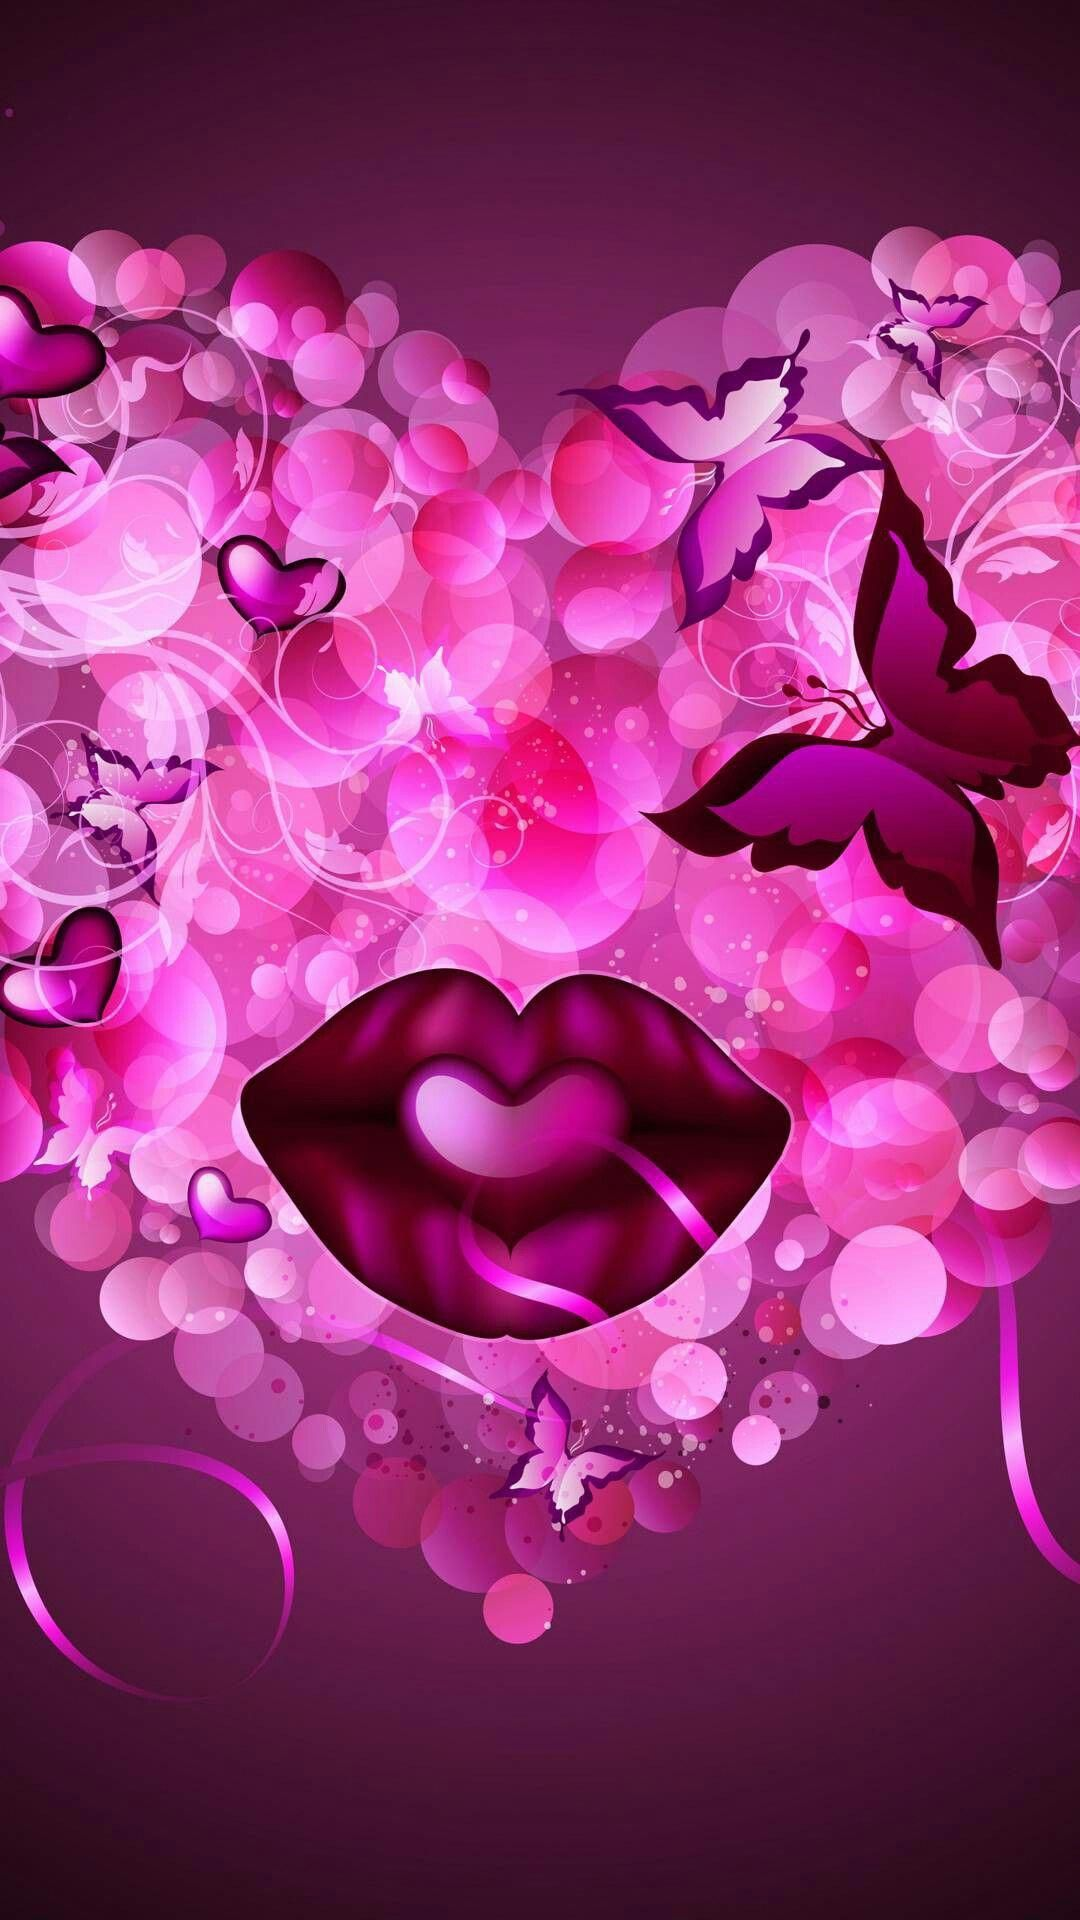 #Pinklips (With images) | Valentines wallpaper, Diamond ...